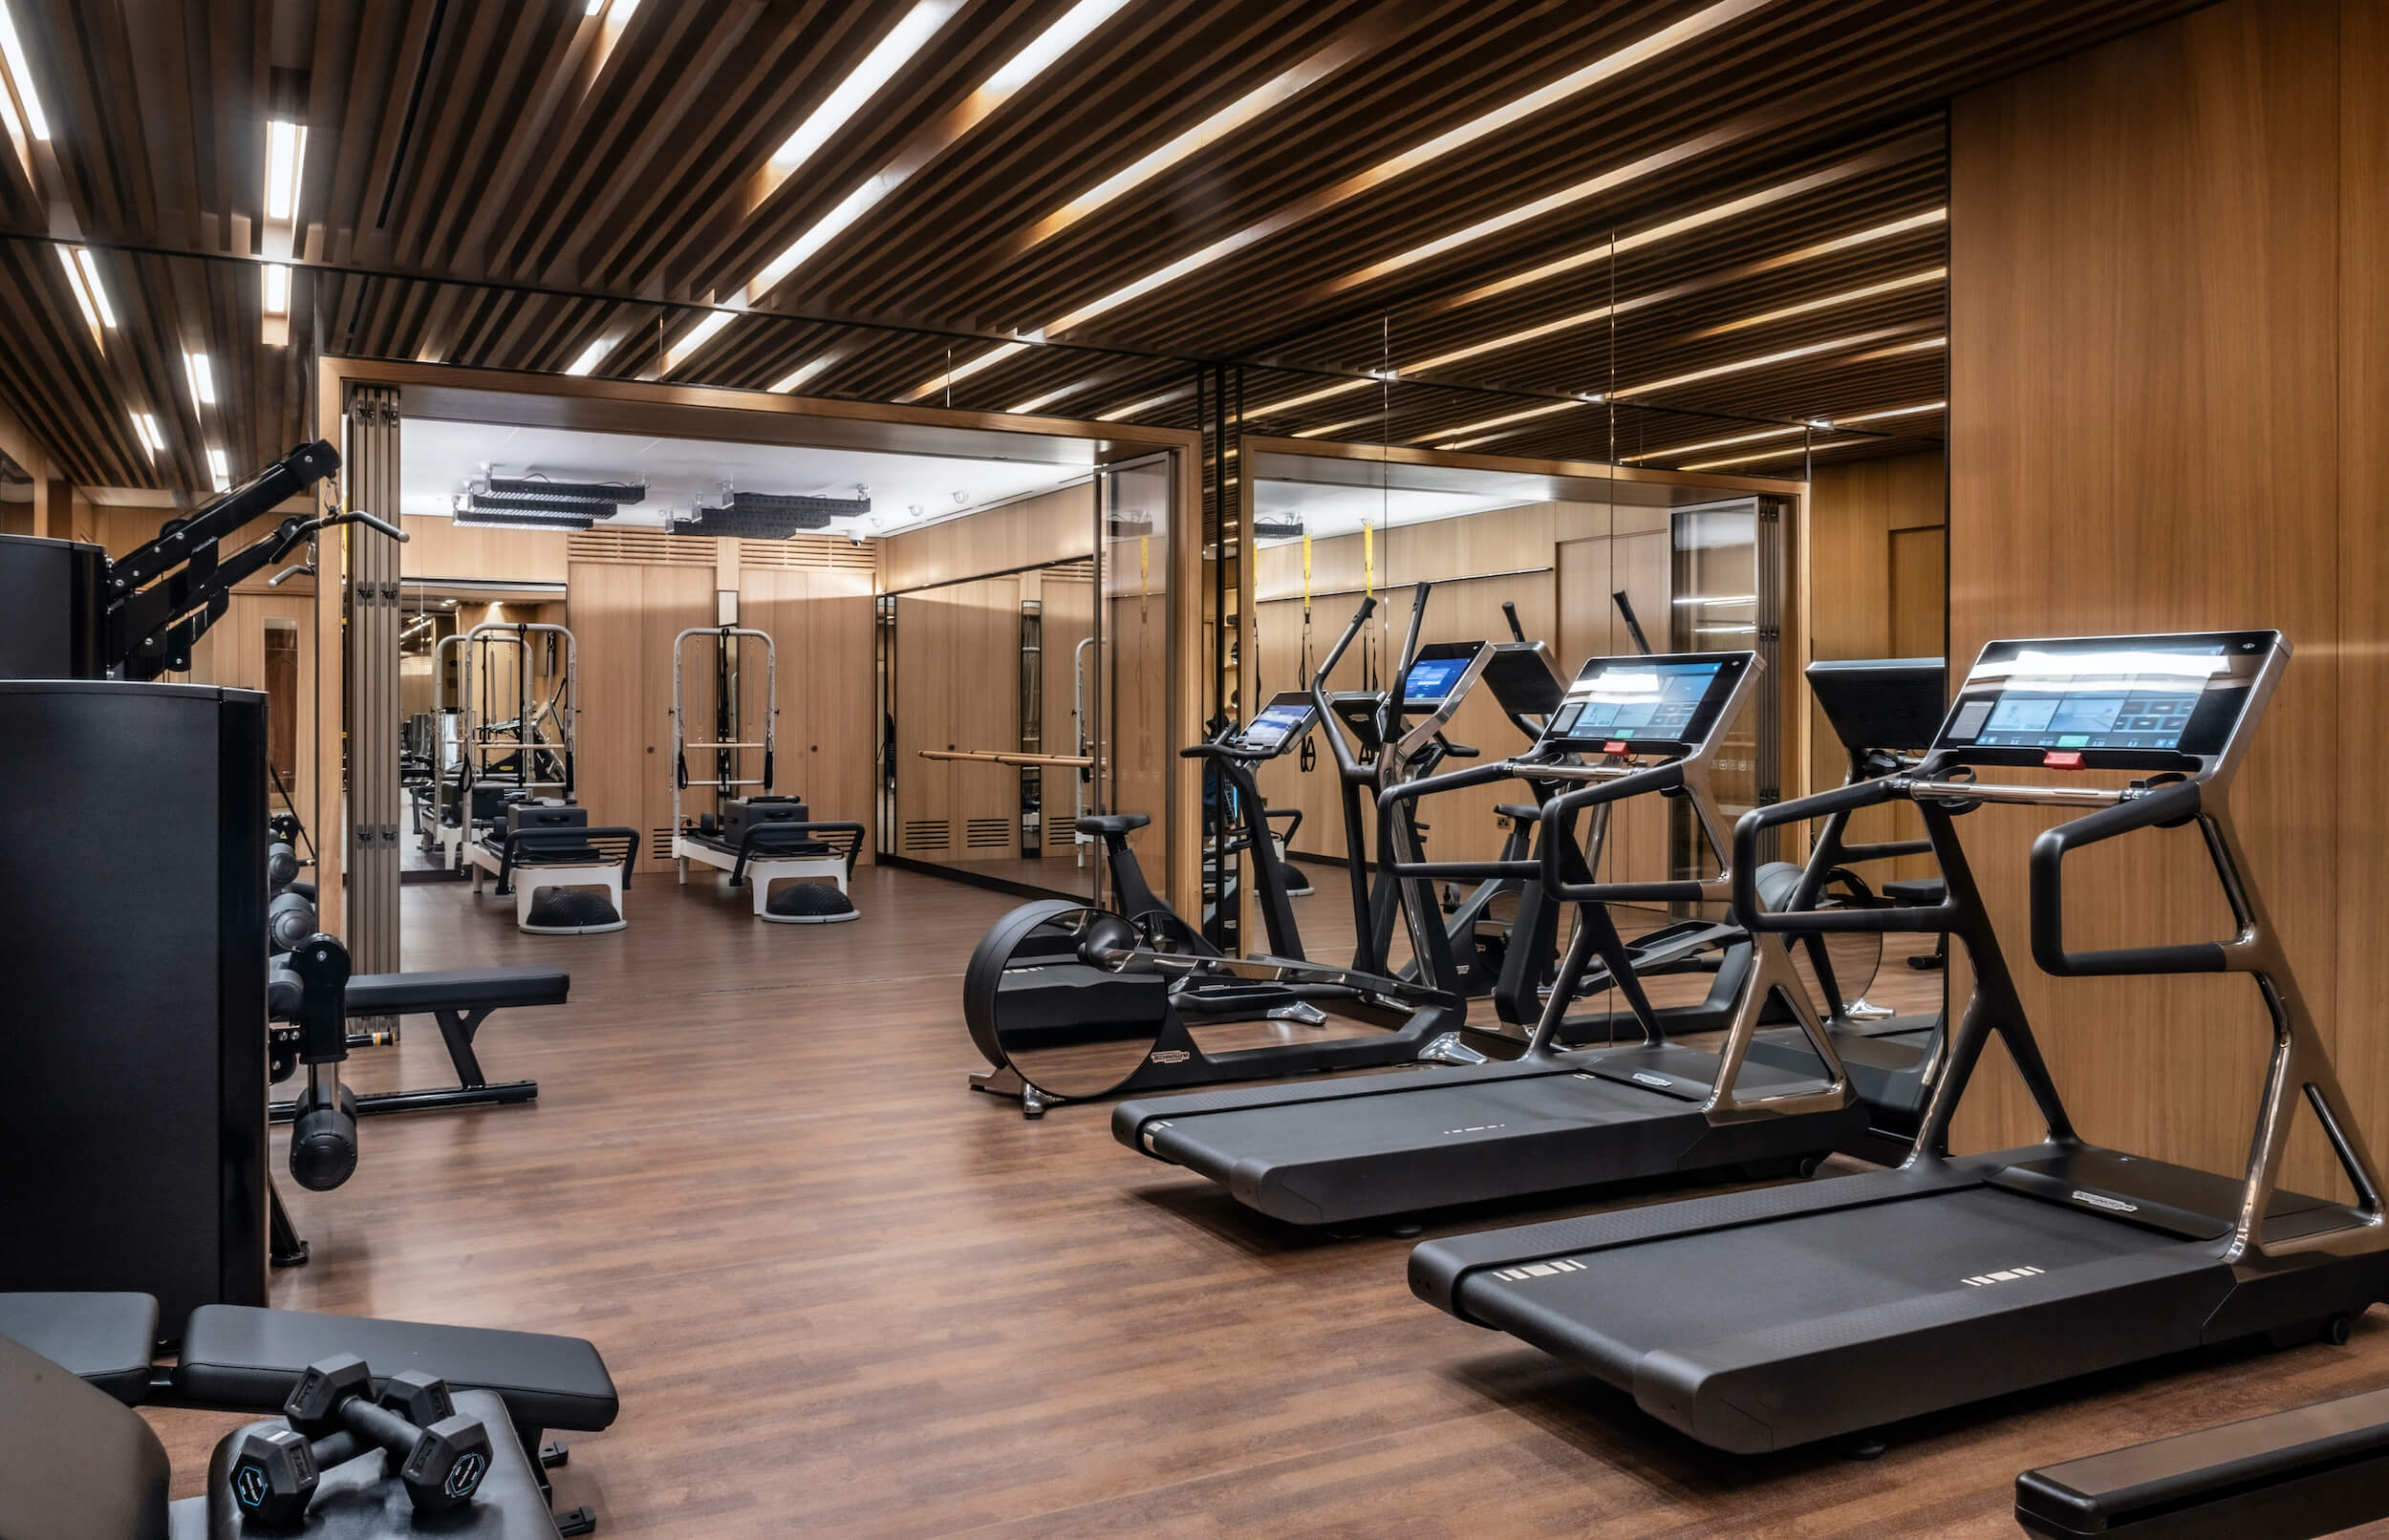 Gym with fitness machines and equipment